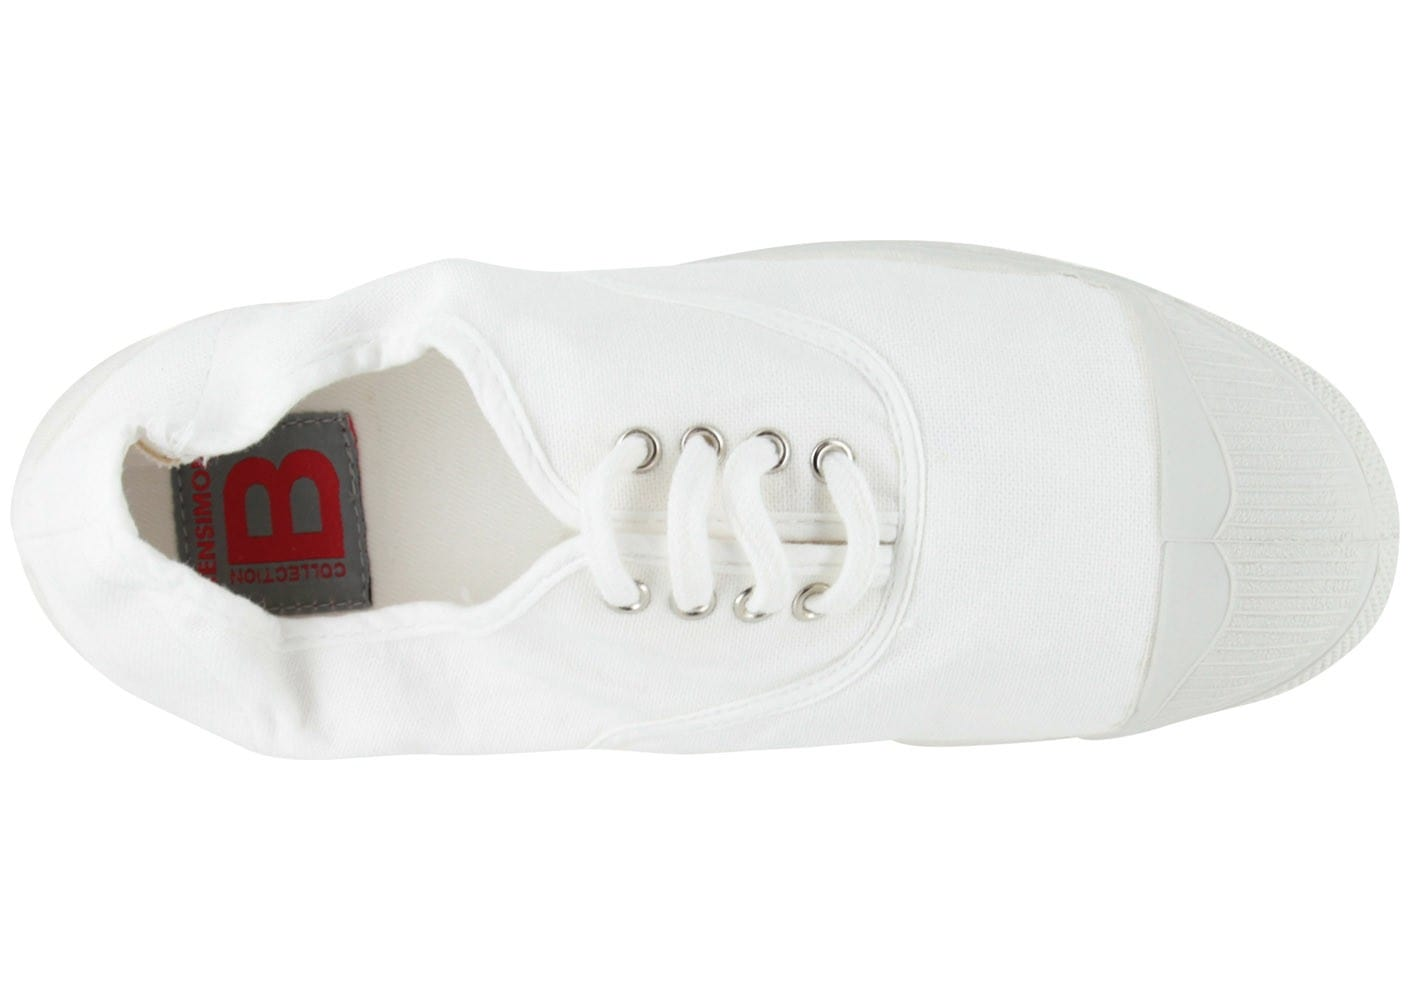 New York dd08f 9f738 Bensimon Basic Lacet Blanche - Chaussures Chaussures - Chausport